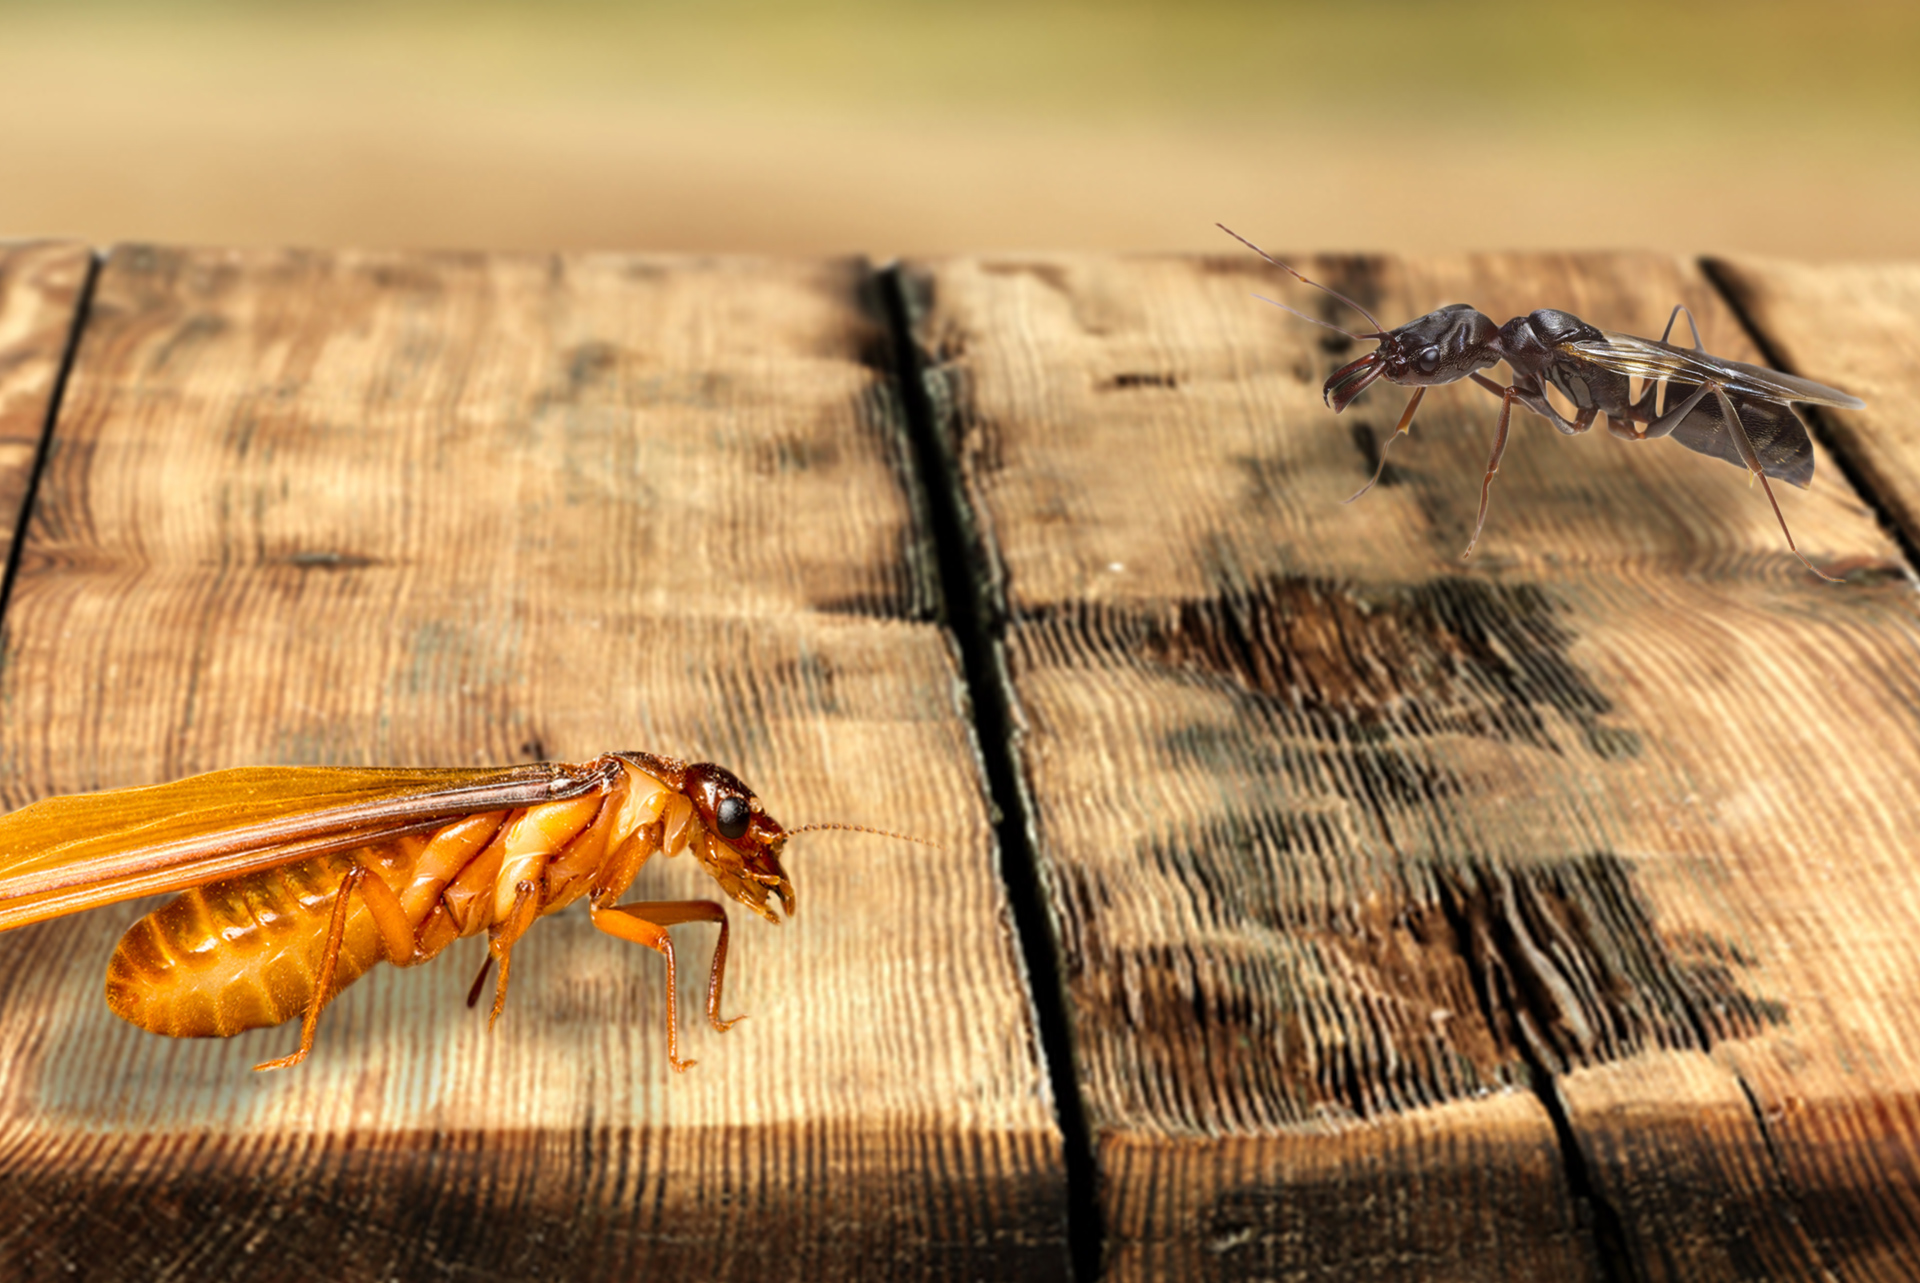 Not Your Usual Suspects Termites Vs Flying Ants